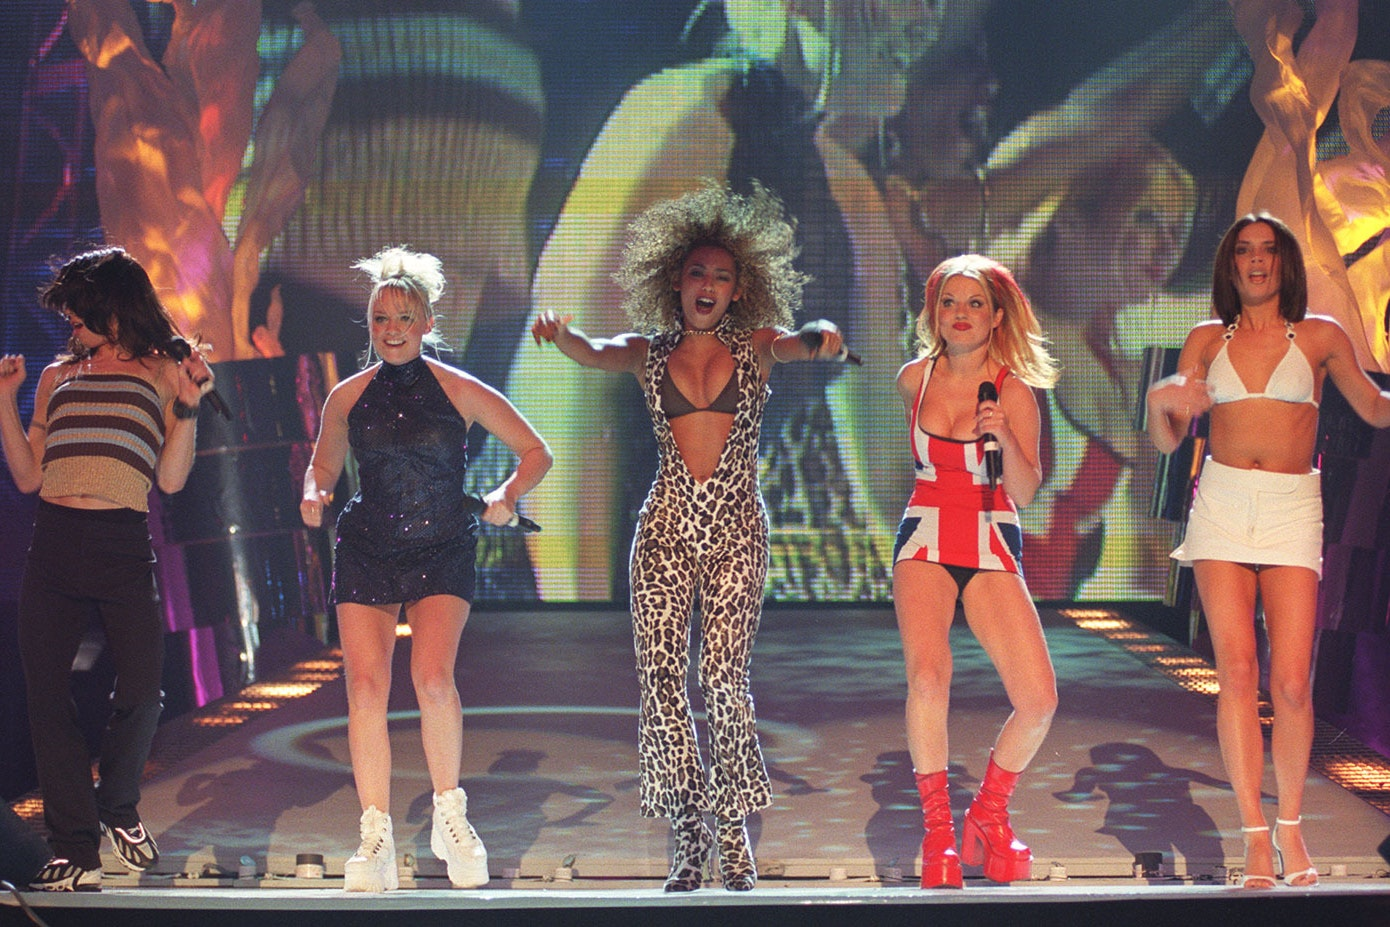 The Spice Girls performing at the Brit Awards (Fiona Hanson/PA)